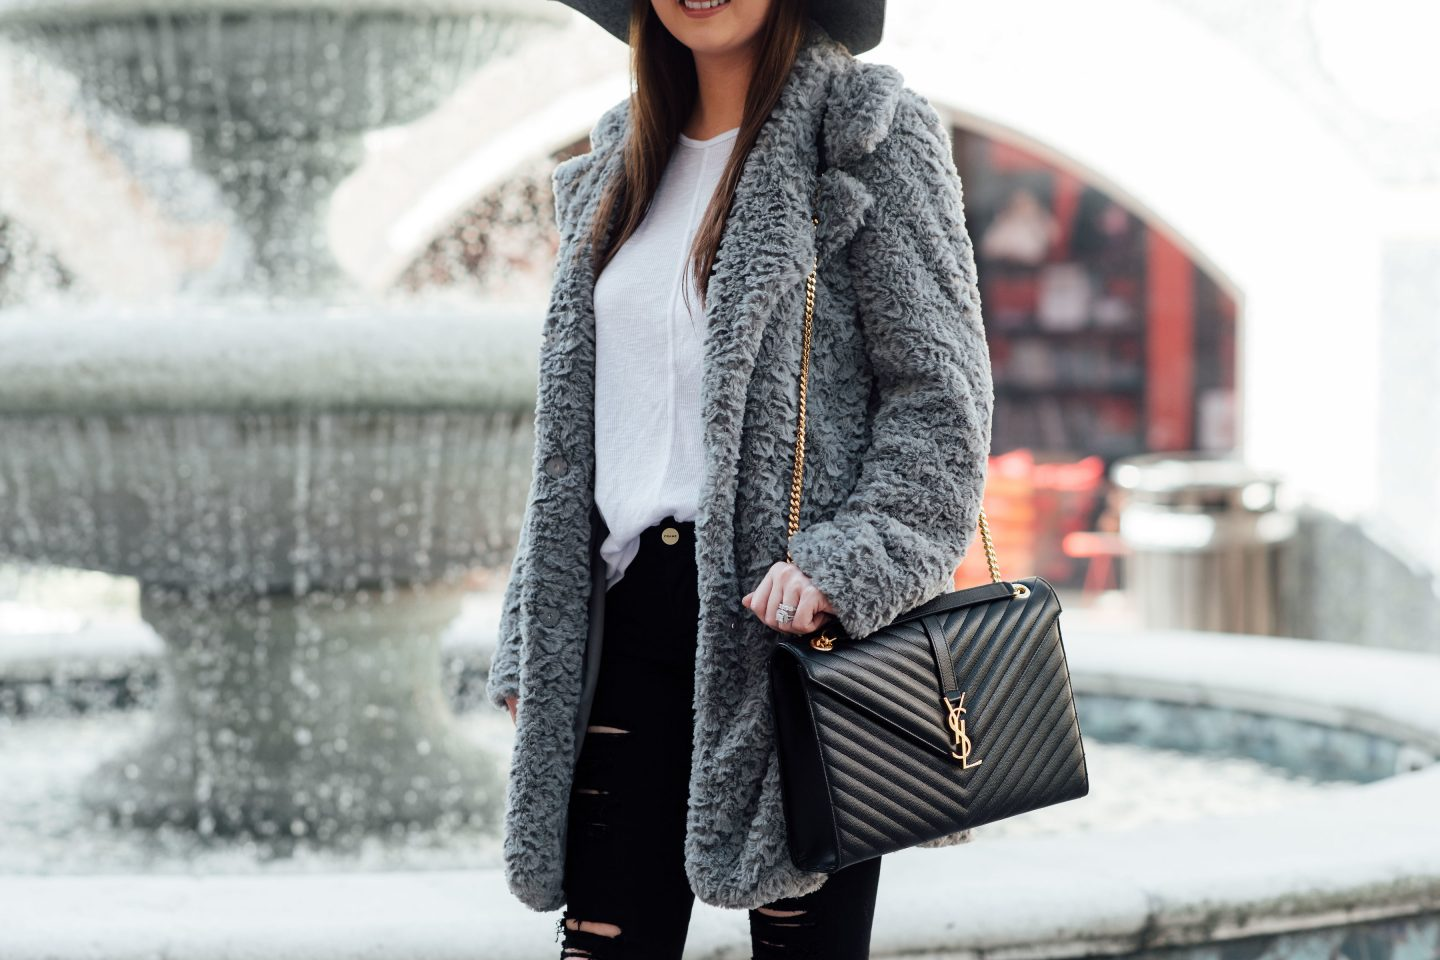 Best faux fur coats 2018, faux fur coat, grey fur coat, grey faux fur coat, faux fur coat trend, ysl bag, ysl shoulder bag, black ripped jeans, Gucci mules, Gucci glitter mules, how to style faux fur, stylish faux fur